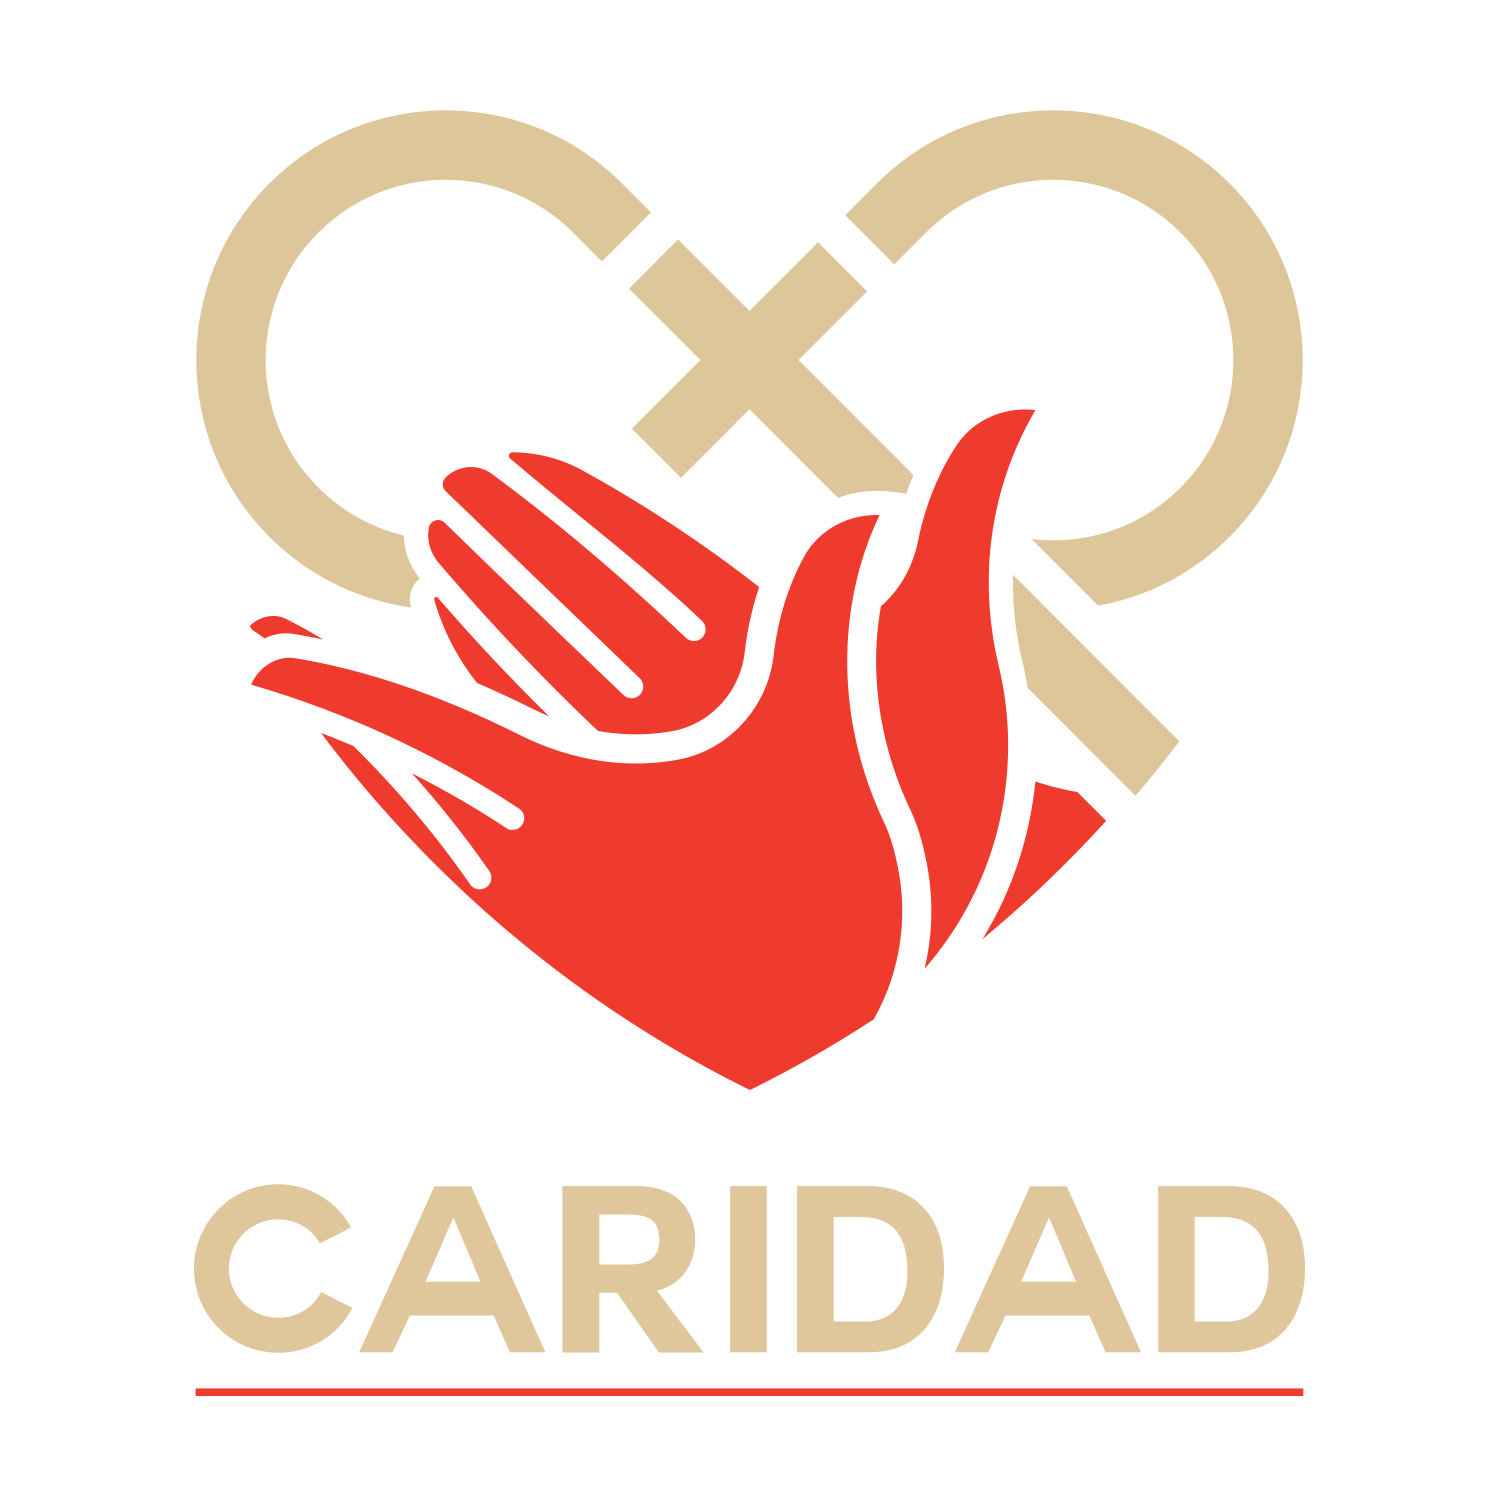 Association - Caridad